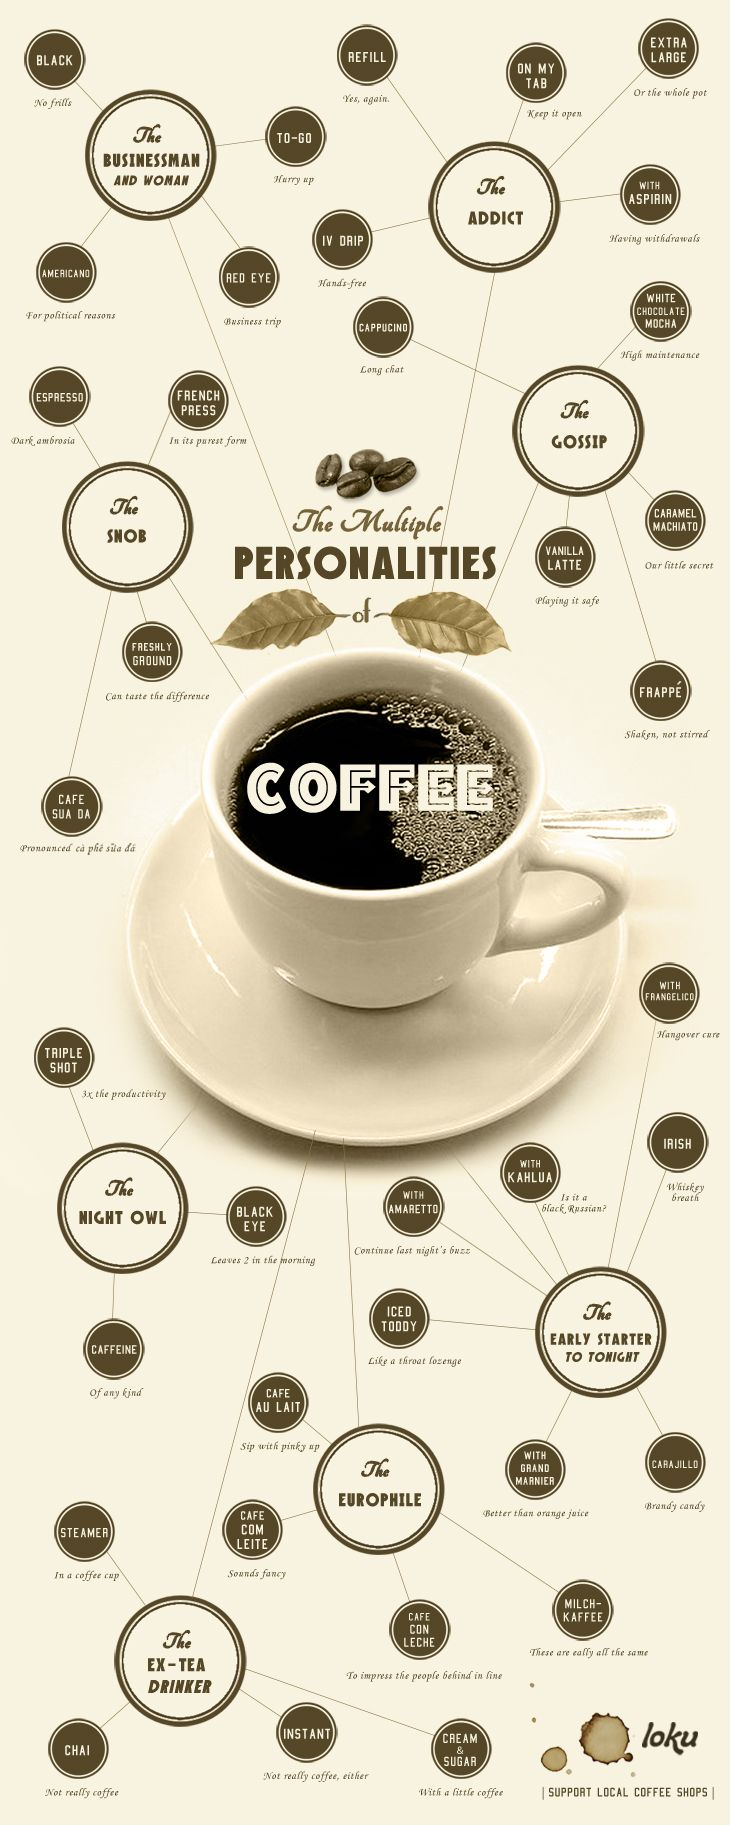 What's Your Cofeee Personality  is part of Find Out What Your Coffee Order Reveals About Your Personality - What kind of coffee suits your personality  This chart tells you the answer  Business people, early risers, there's even a perfect coffee for extea drinkers